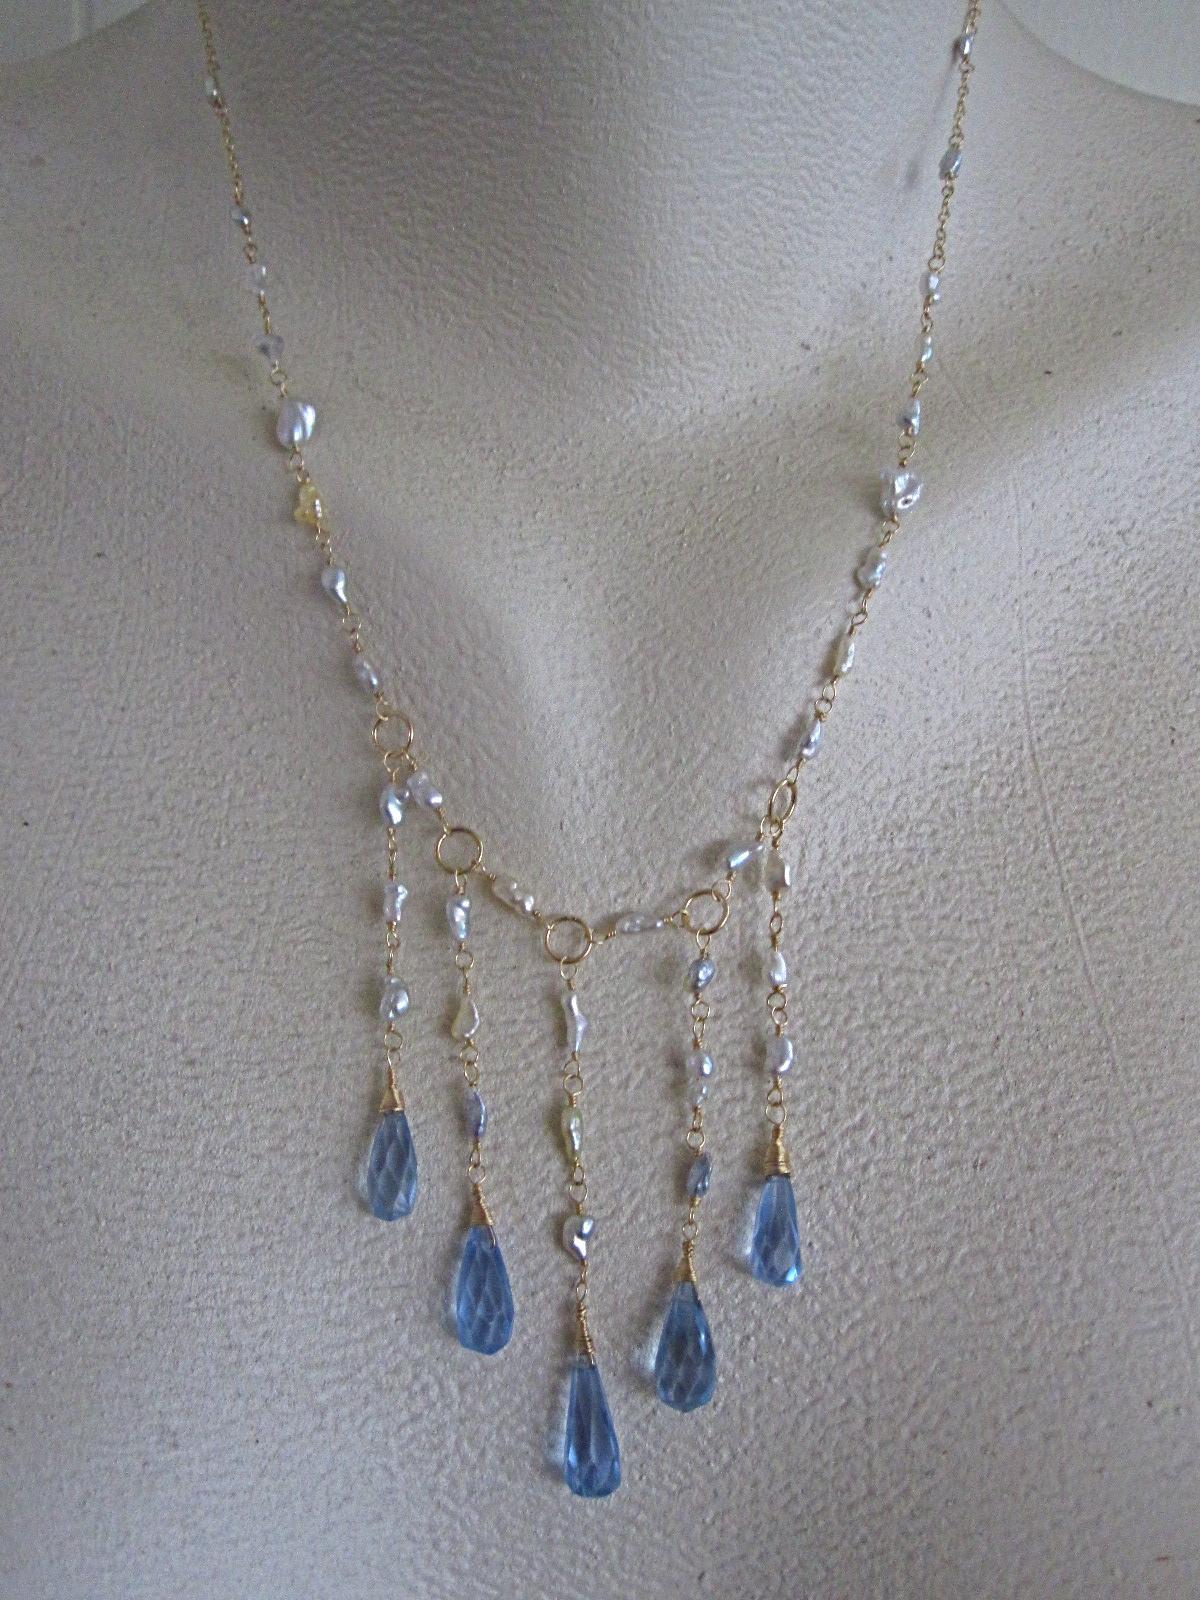 14K Solid Gold~ AAA South Sea Keishi Pearls and Blue Topaz Drops~ GODDESS Necklace~one of a kind